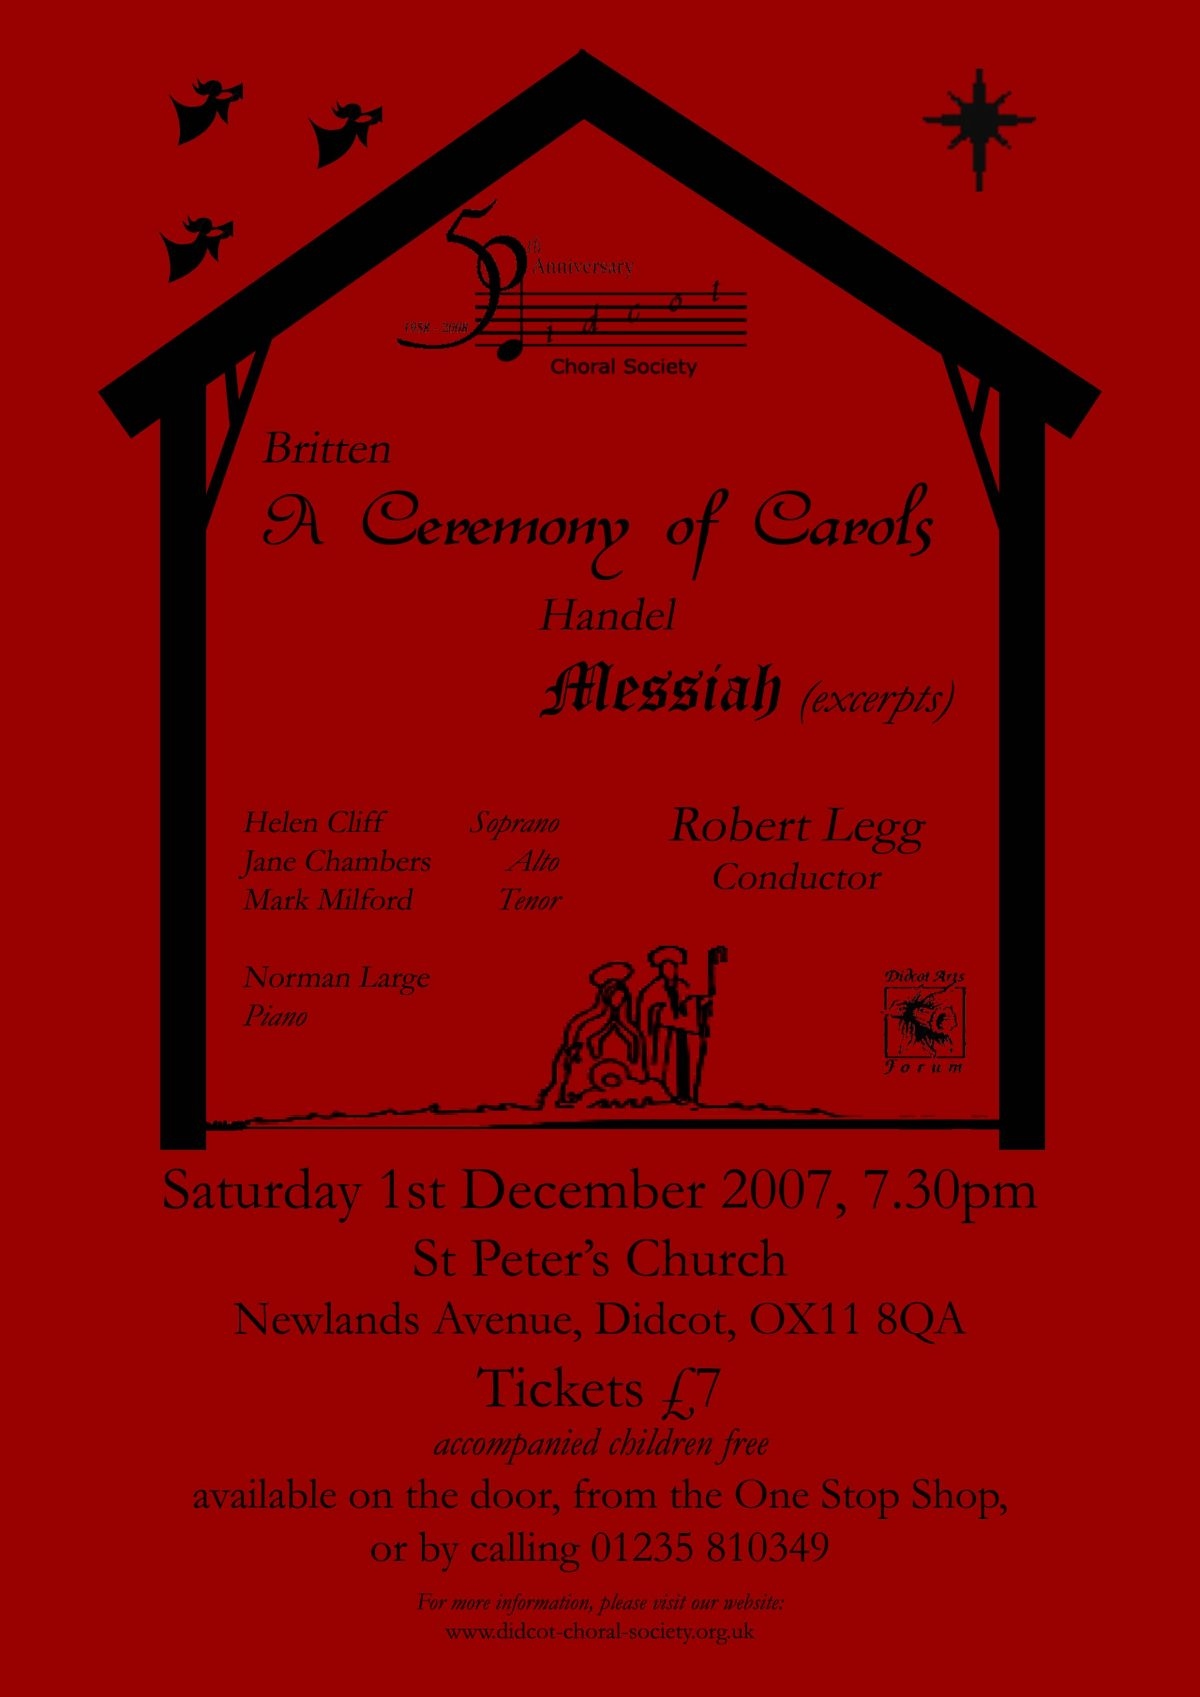 A Ceremonyh of Carols December 2007